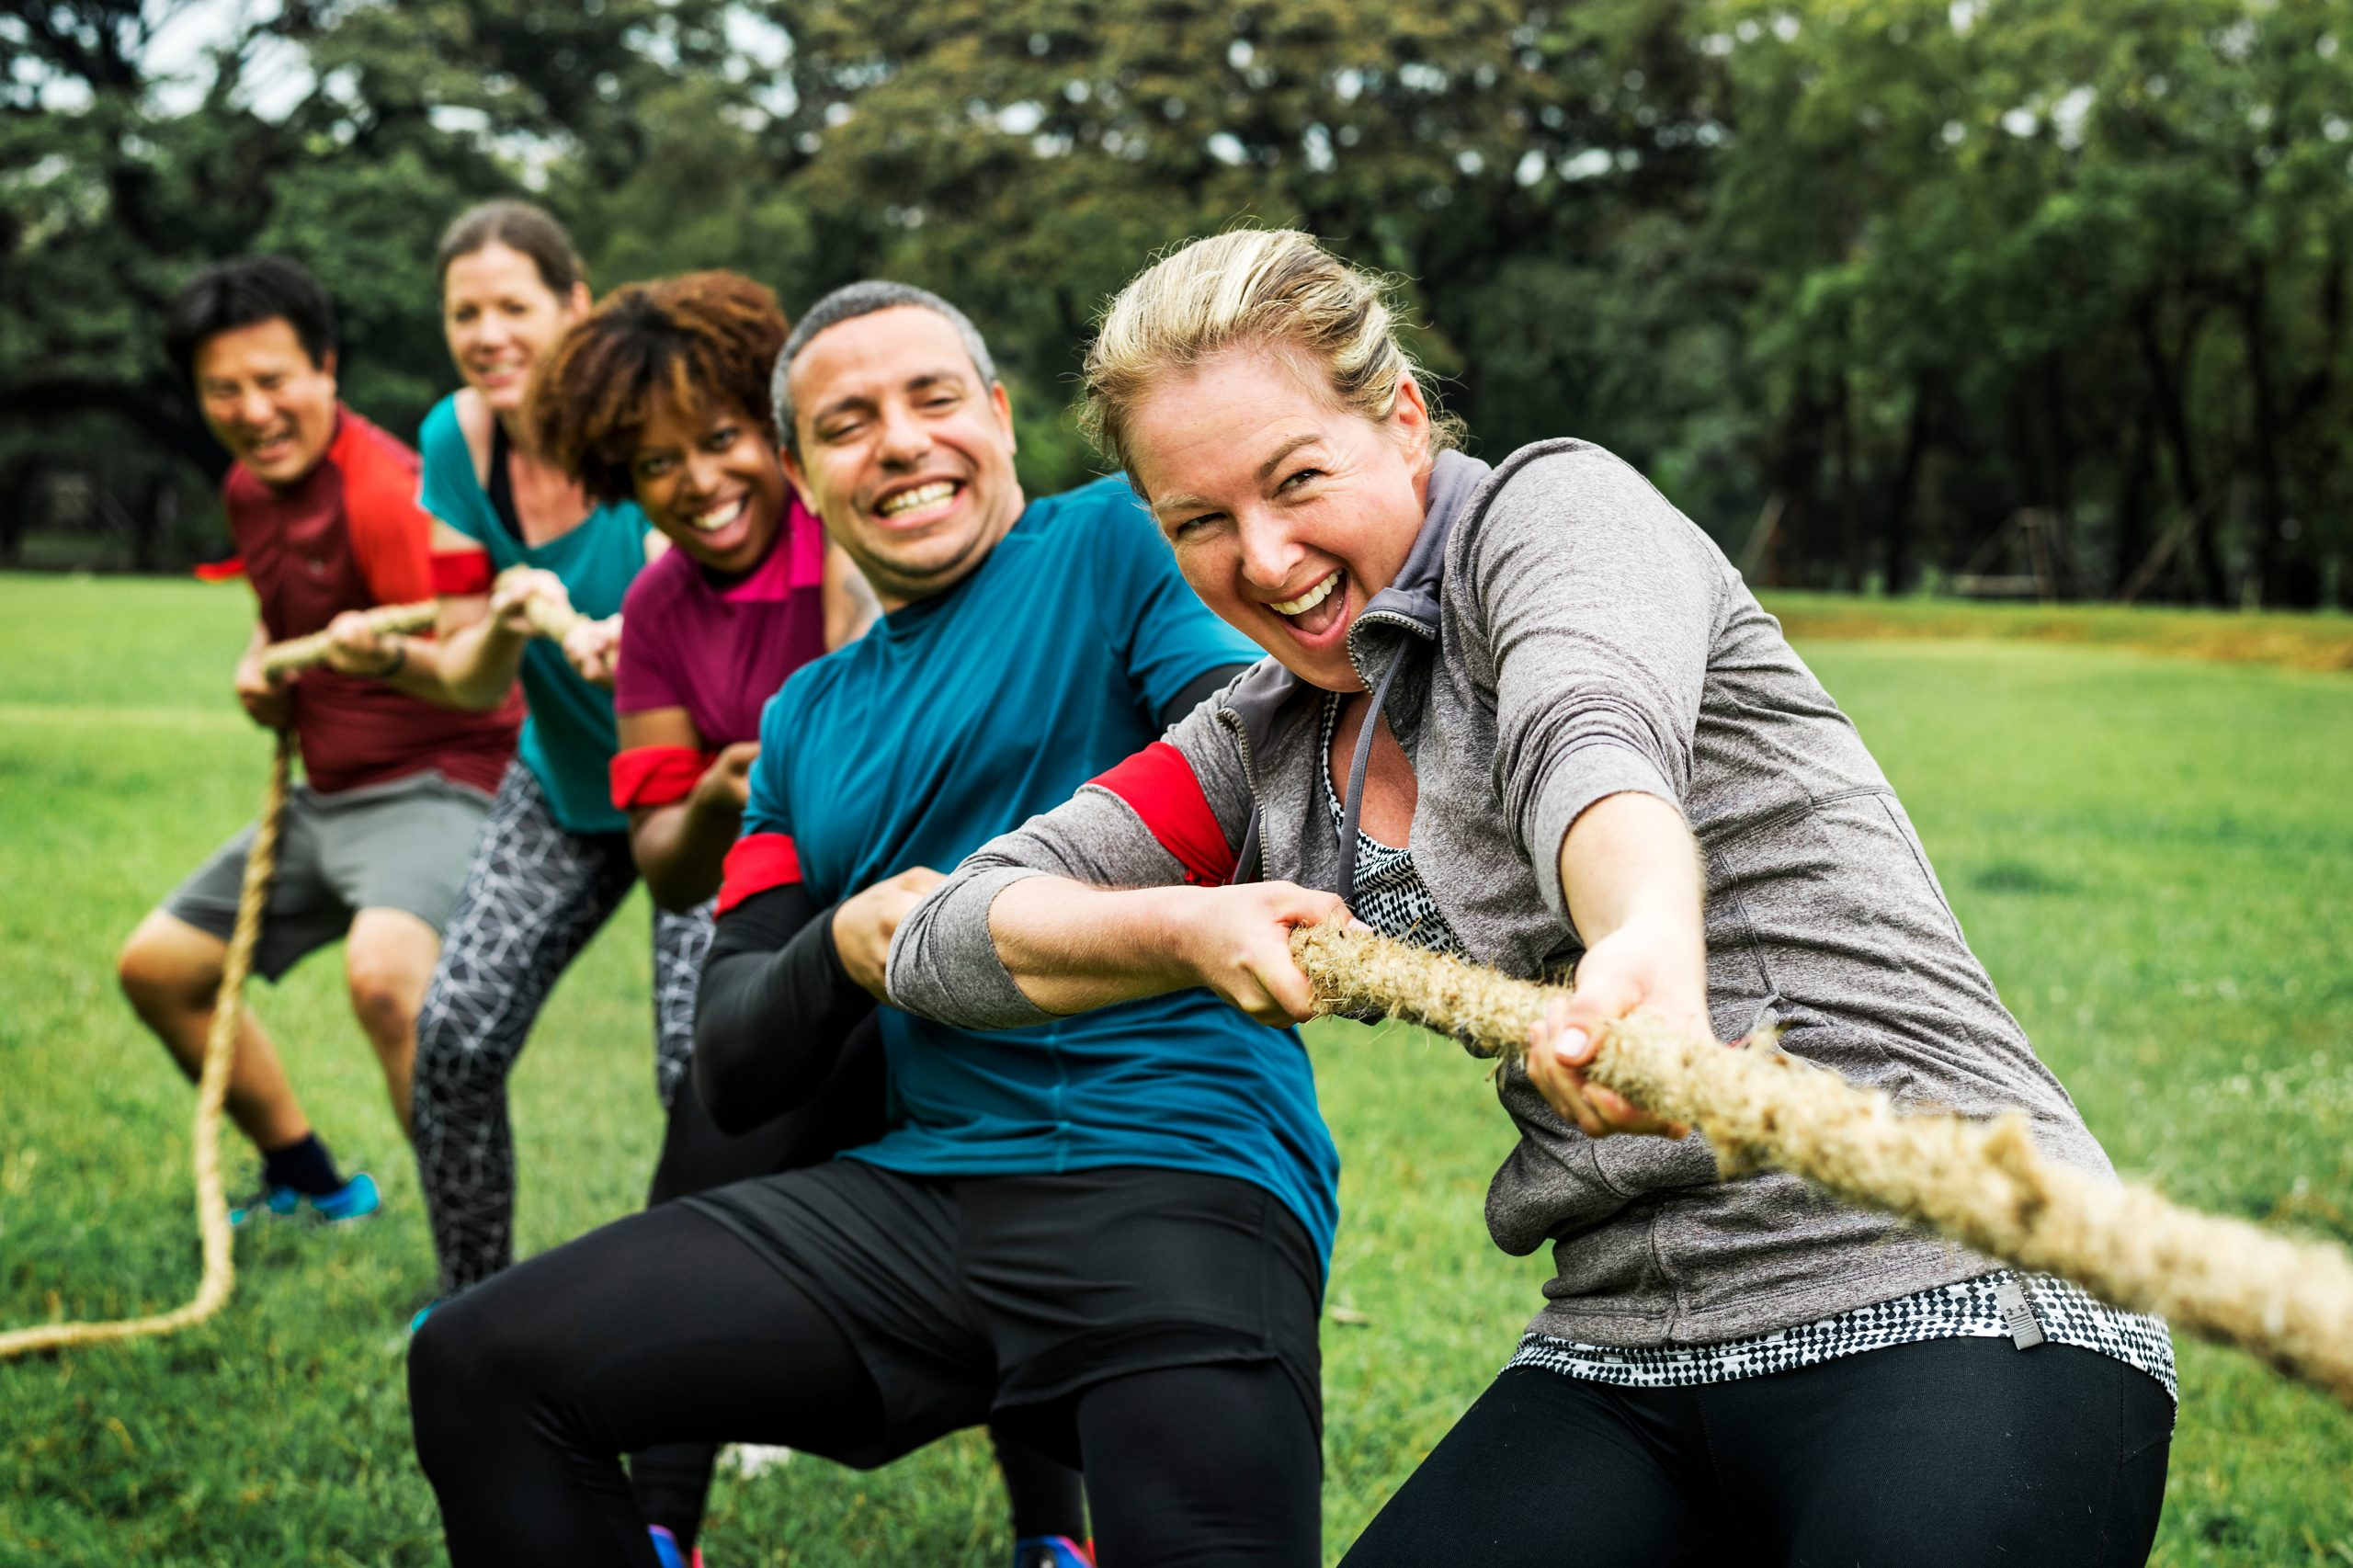 Photo of a team of people pulling a tug of war rope